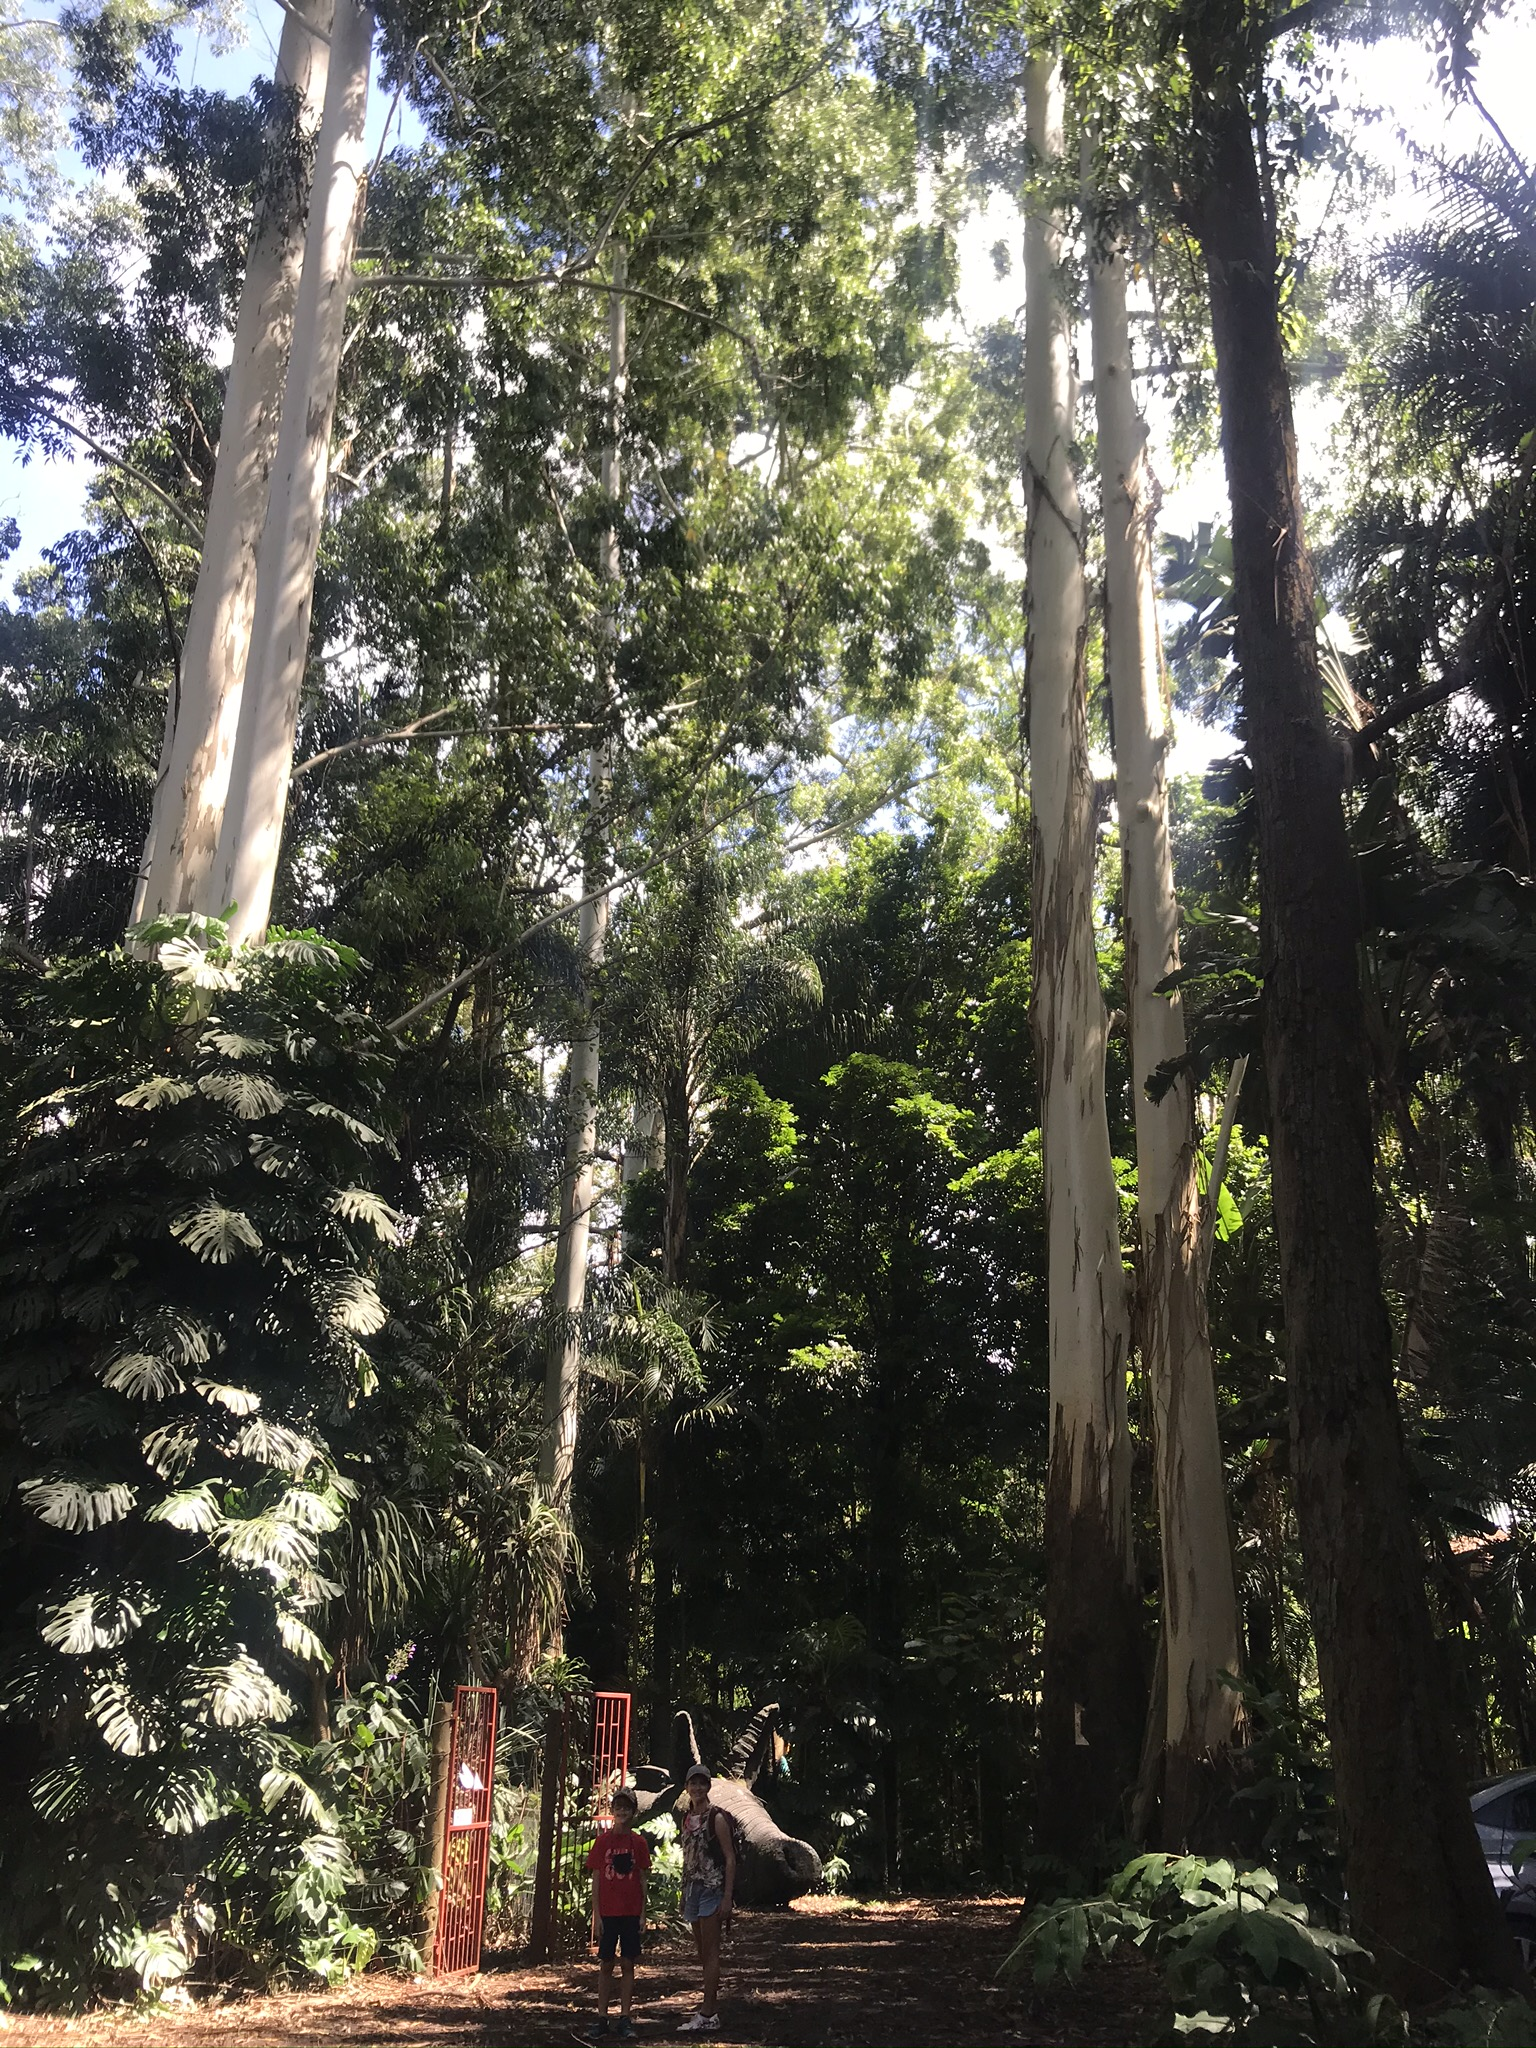 The tall trees at the Ammazulu Gardens and Sculpture Precinct